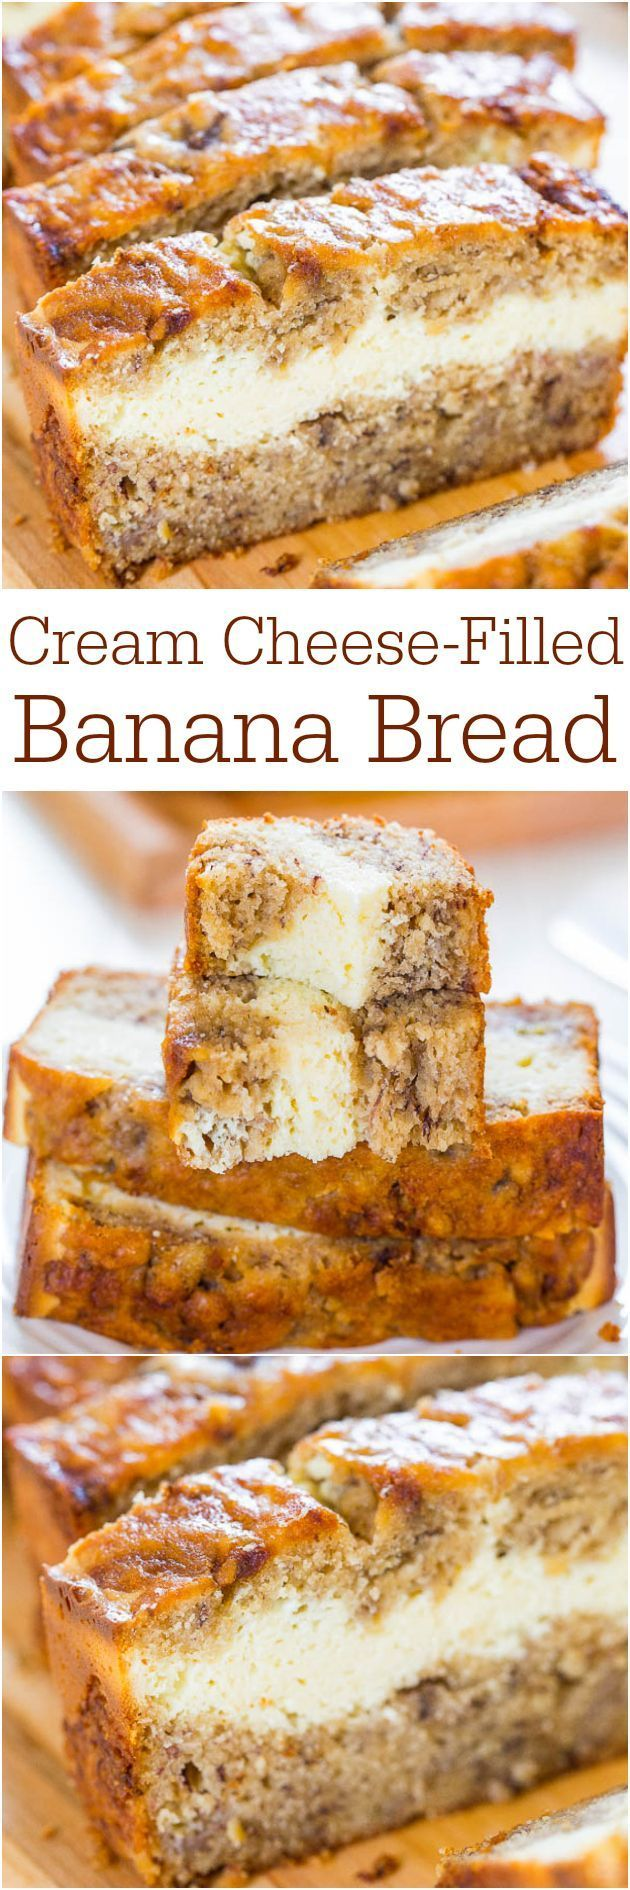 Cream Cheese-Filled Banana Bread - Banana bread that's like having cheesecake baked in! Soft, fluffy, easy and tastes ahhhh-mazing! .